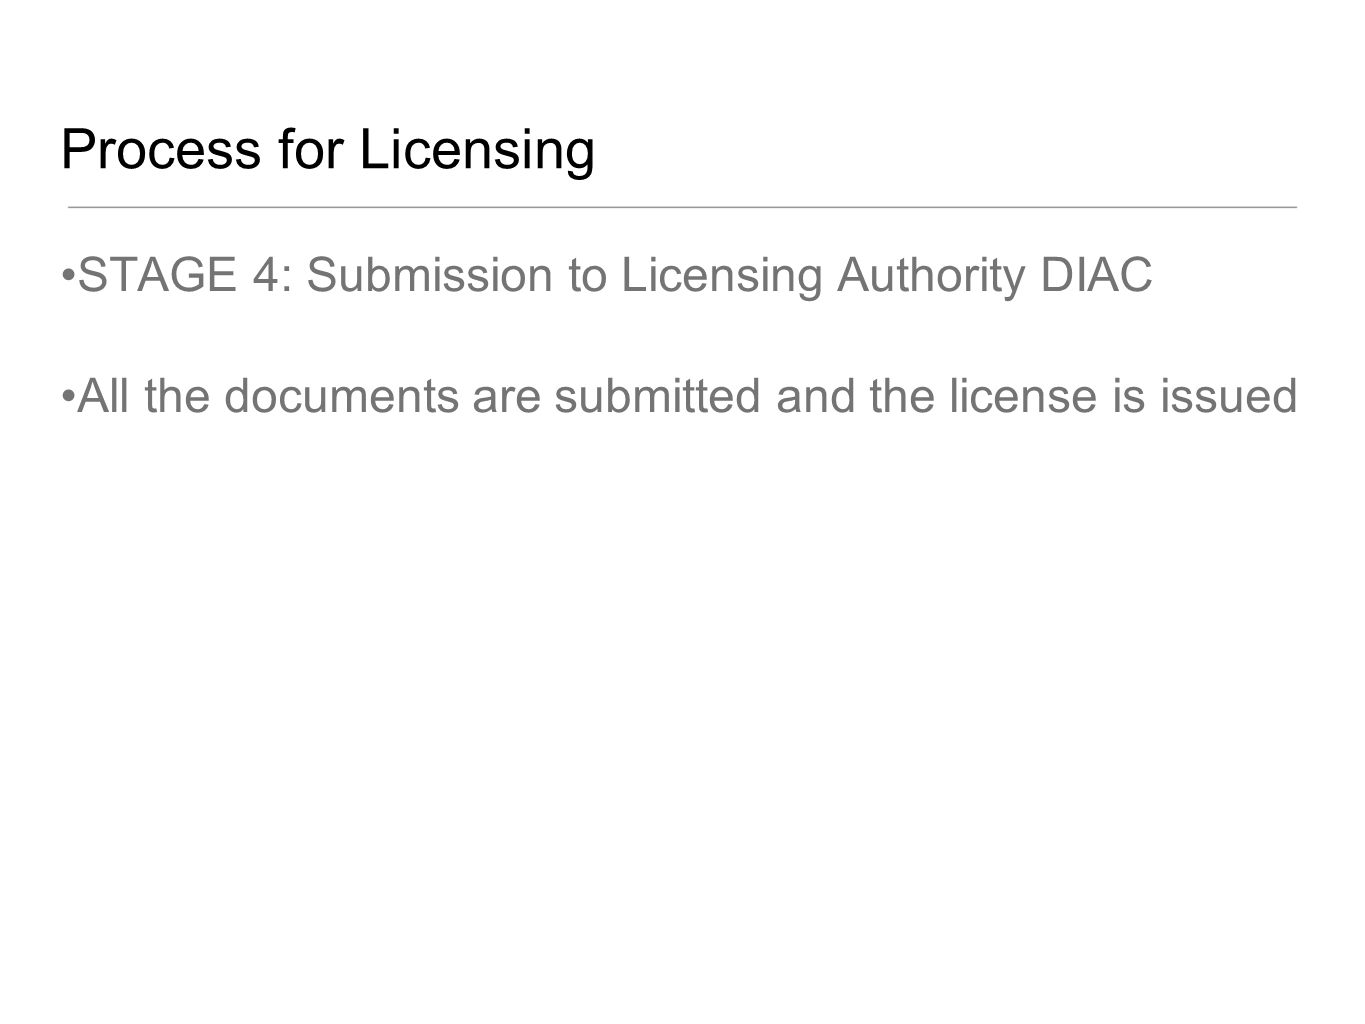 Process for Licensing STAGE 4: Submission to Licensing Authority DIAC All the documents are submitted and the license is issued